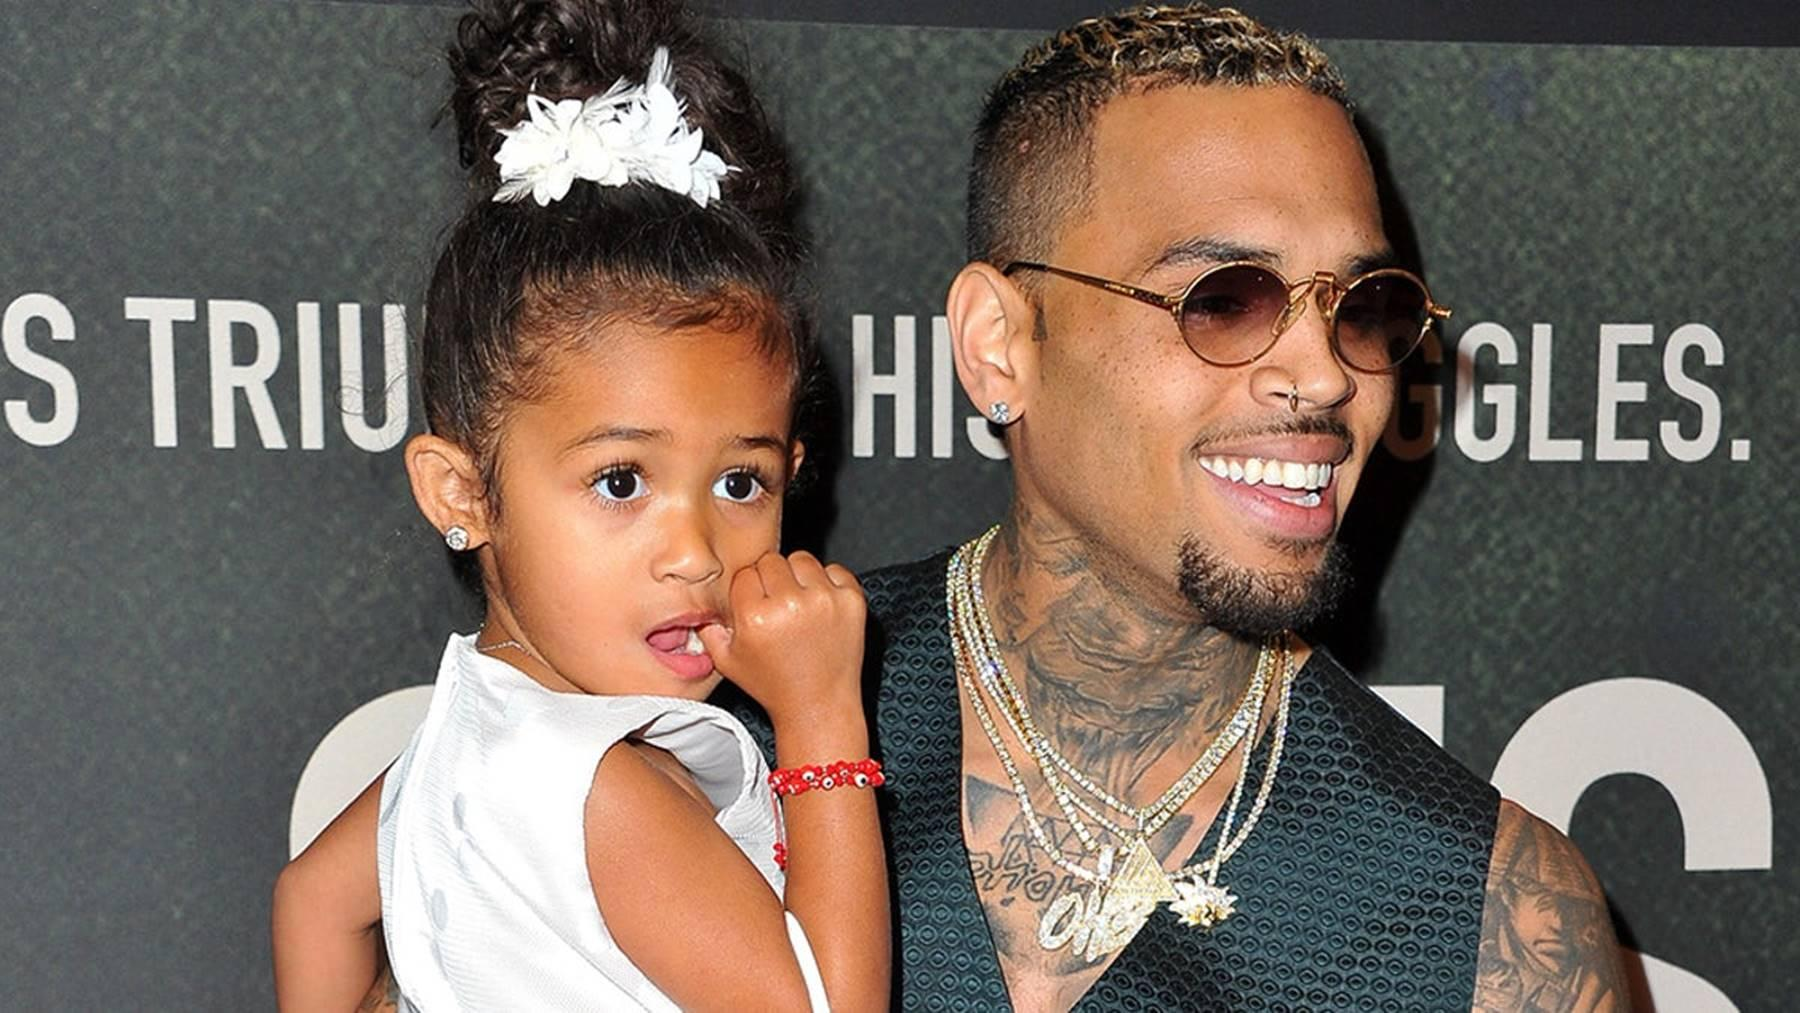 Chris Brown Shares Footage From The Gift Opening Session For Christmas - Check Out Adorable Royalty Brown